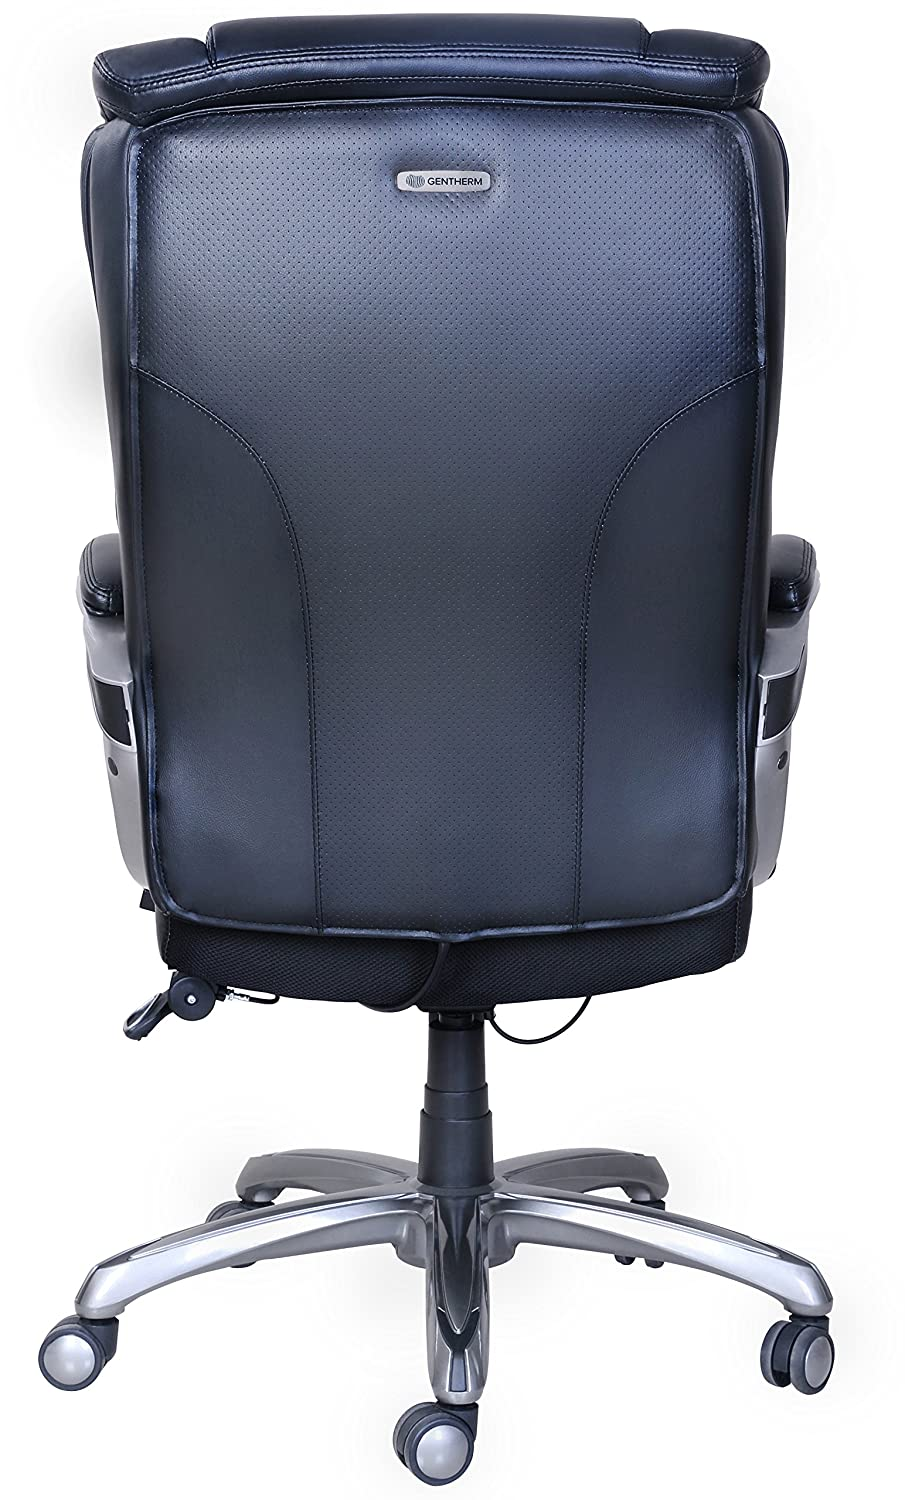 cooled office chair. Gentherm Heated And Cooled Executive Office Chair HC-321: Amazon.ca: Home \u0026 Kitchen C